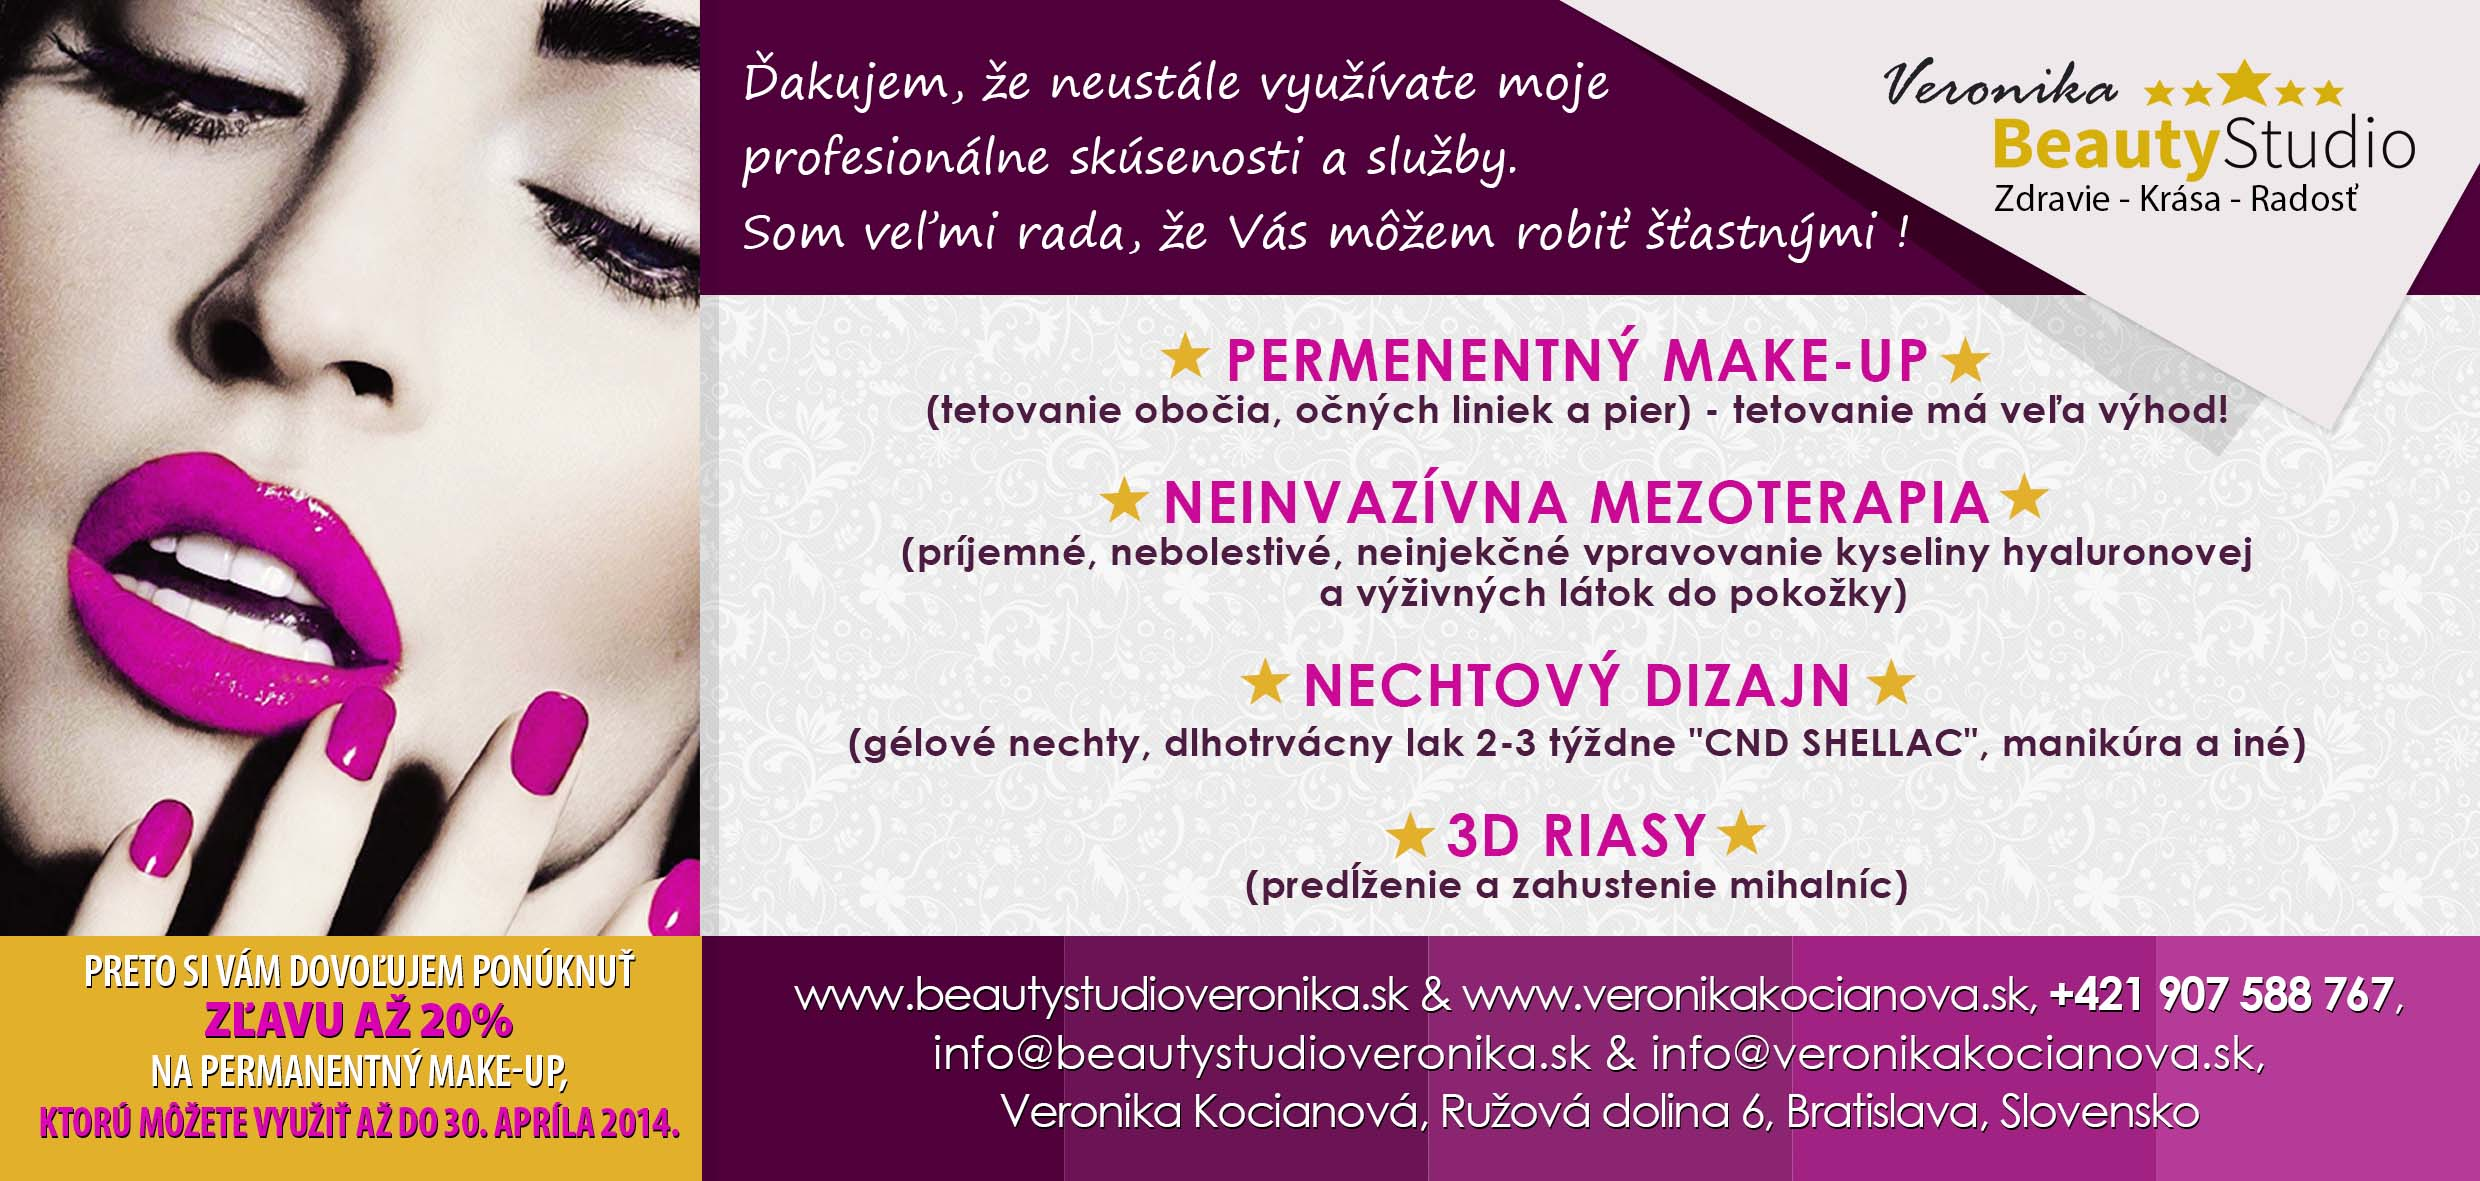 permanentní make up veronika kocianová